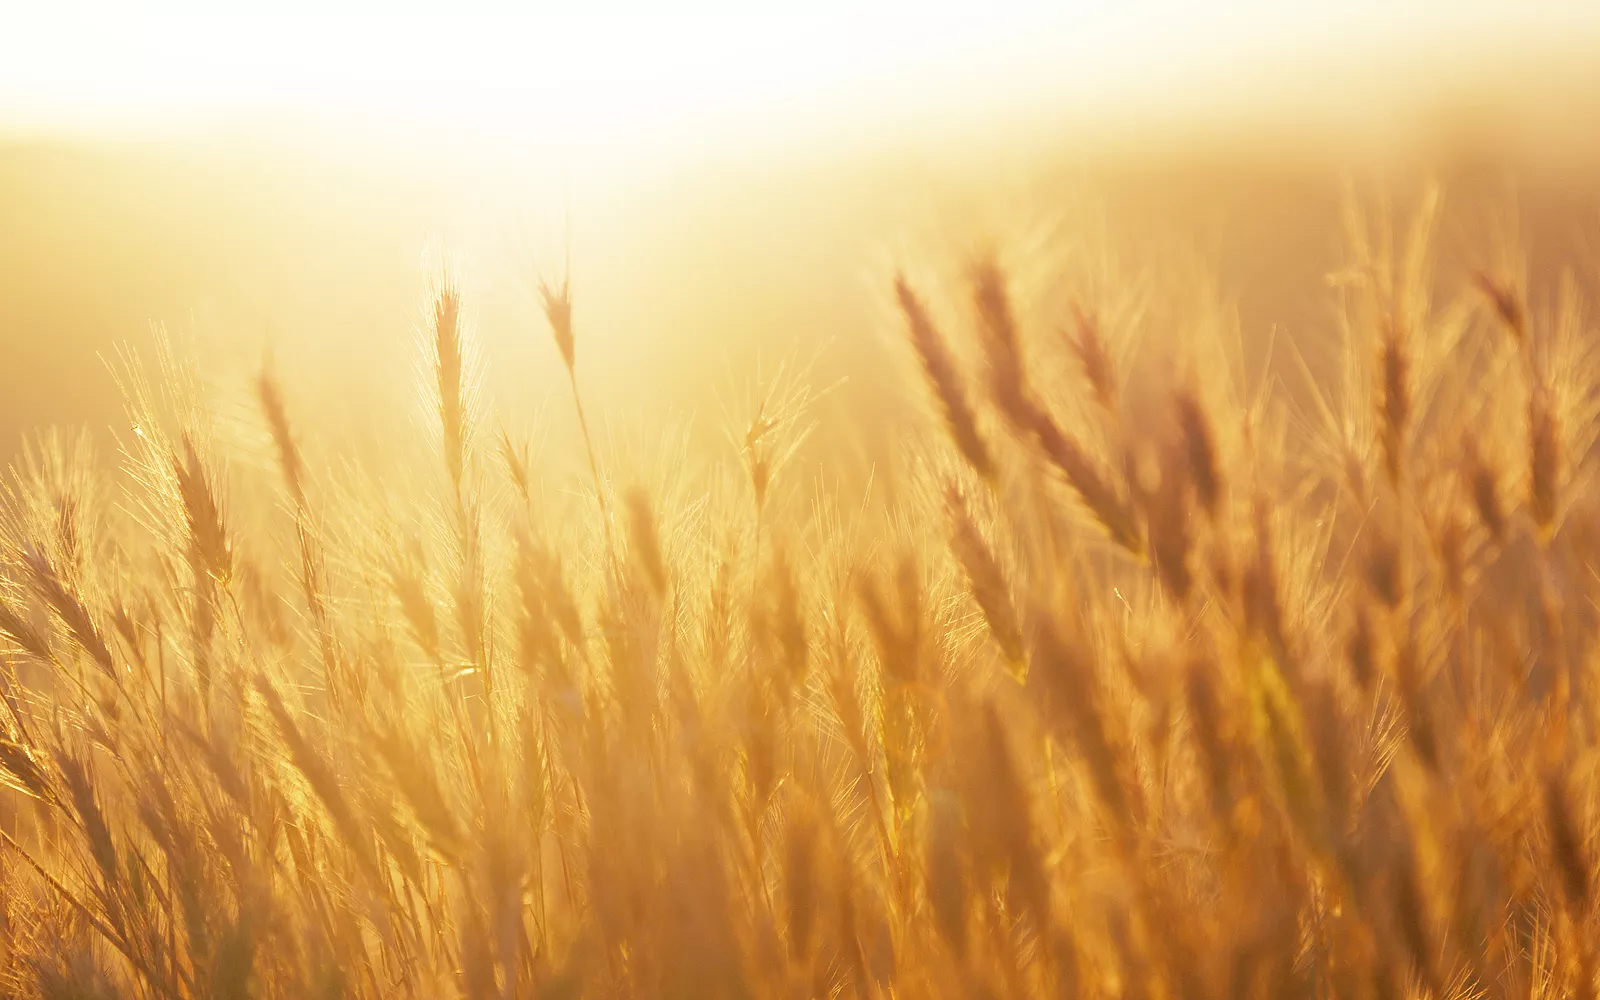 Gluten-Free Customer Dies In Wheat Field